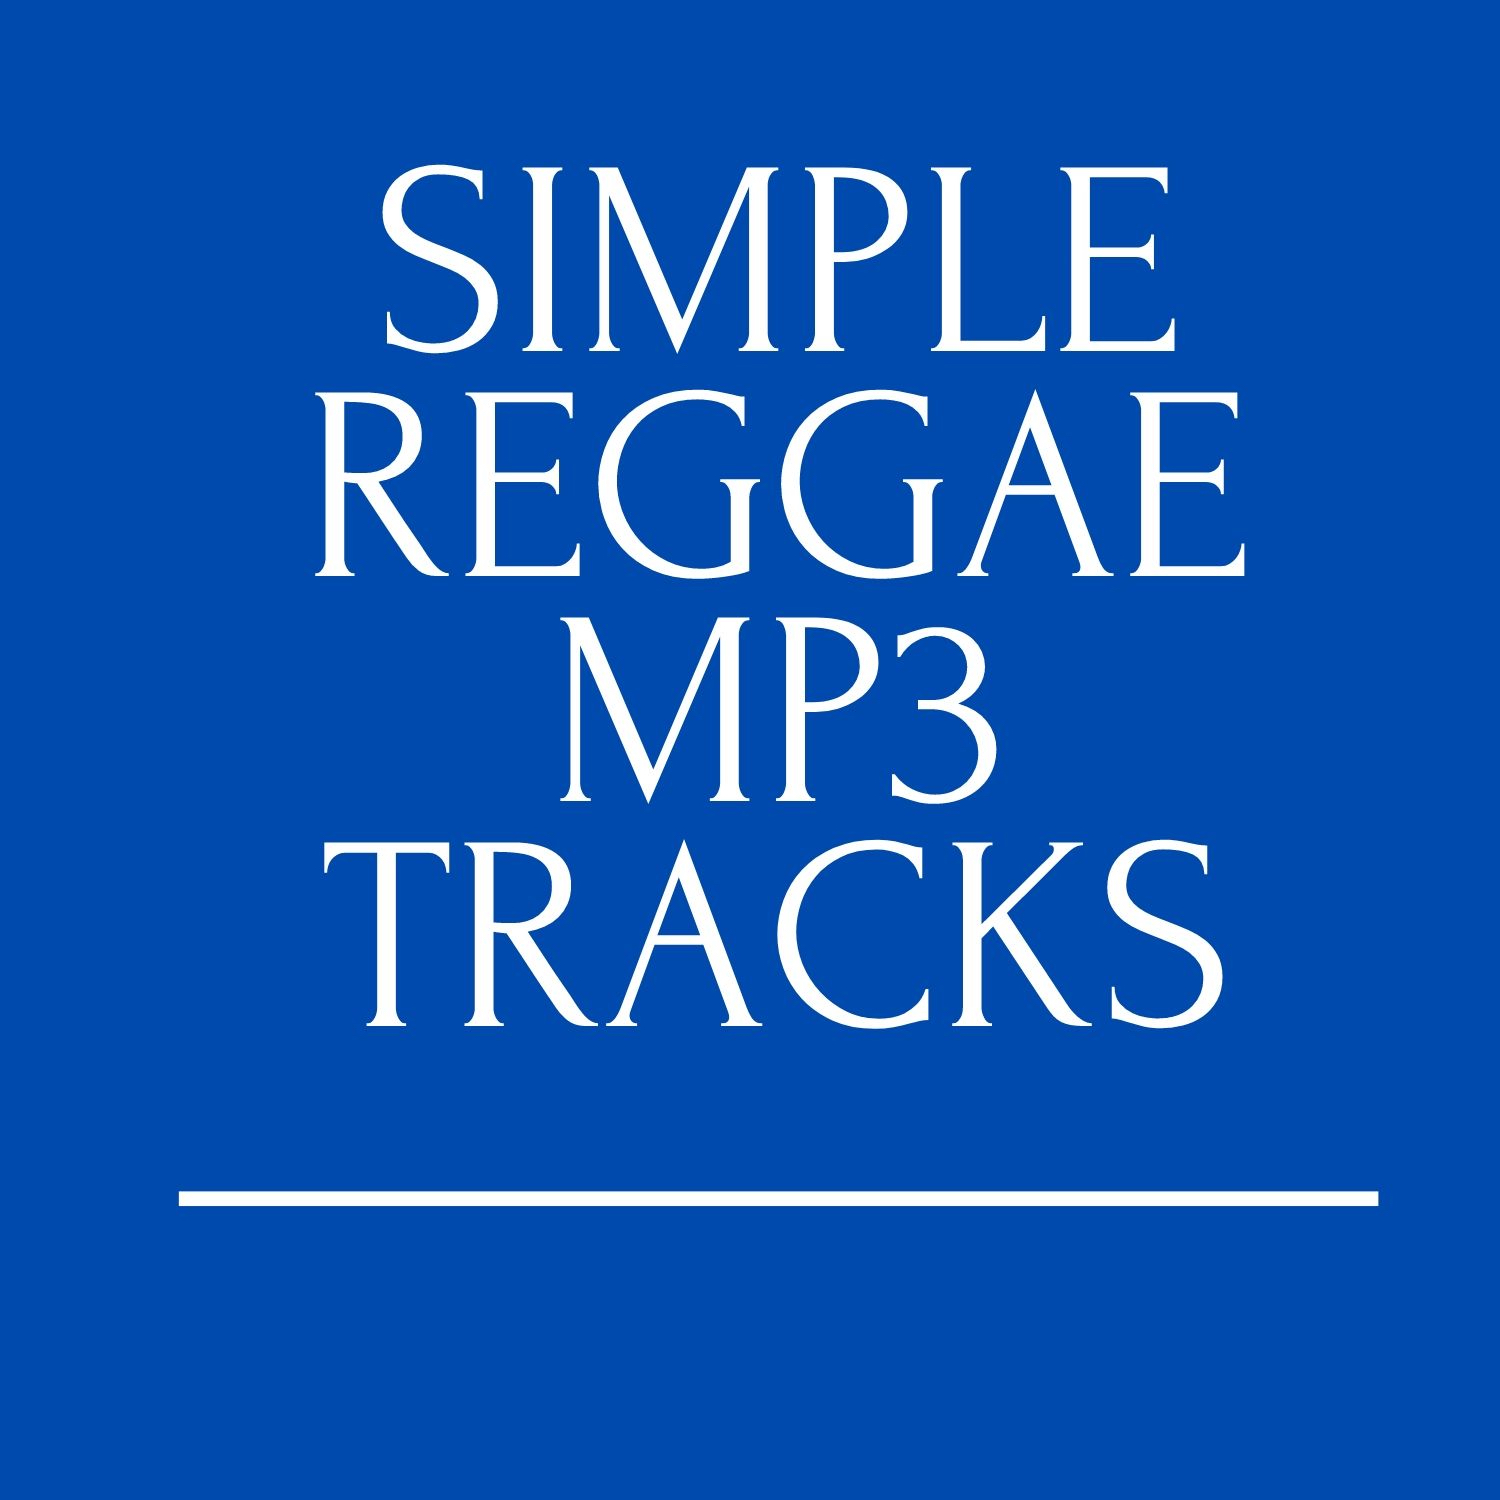 Get Simple Reagge Mp3 Tracks With Different Styles Of Reagge